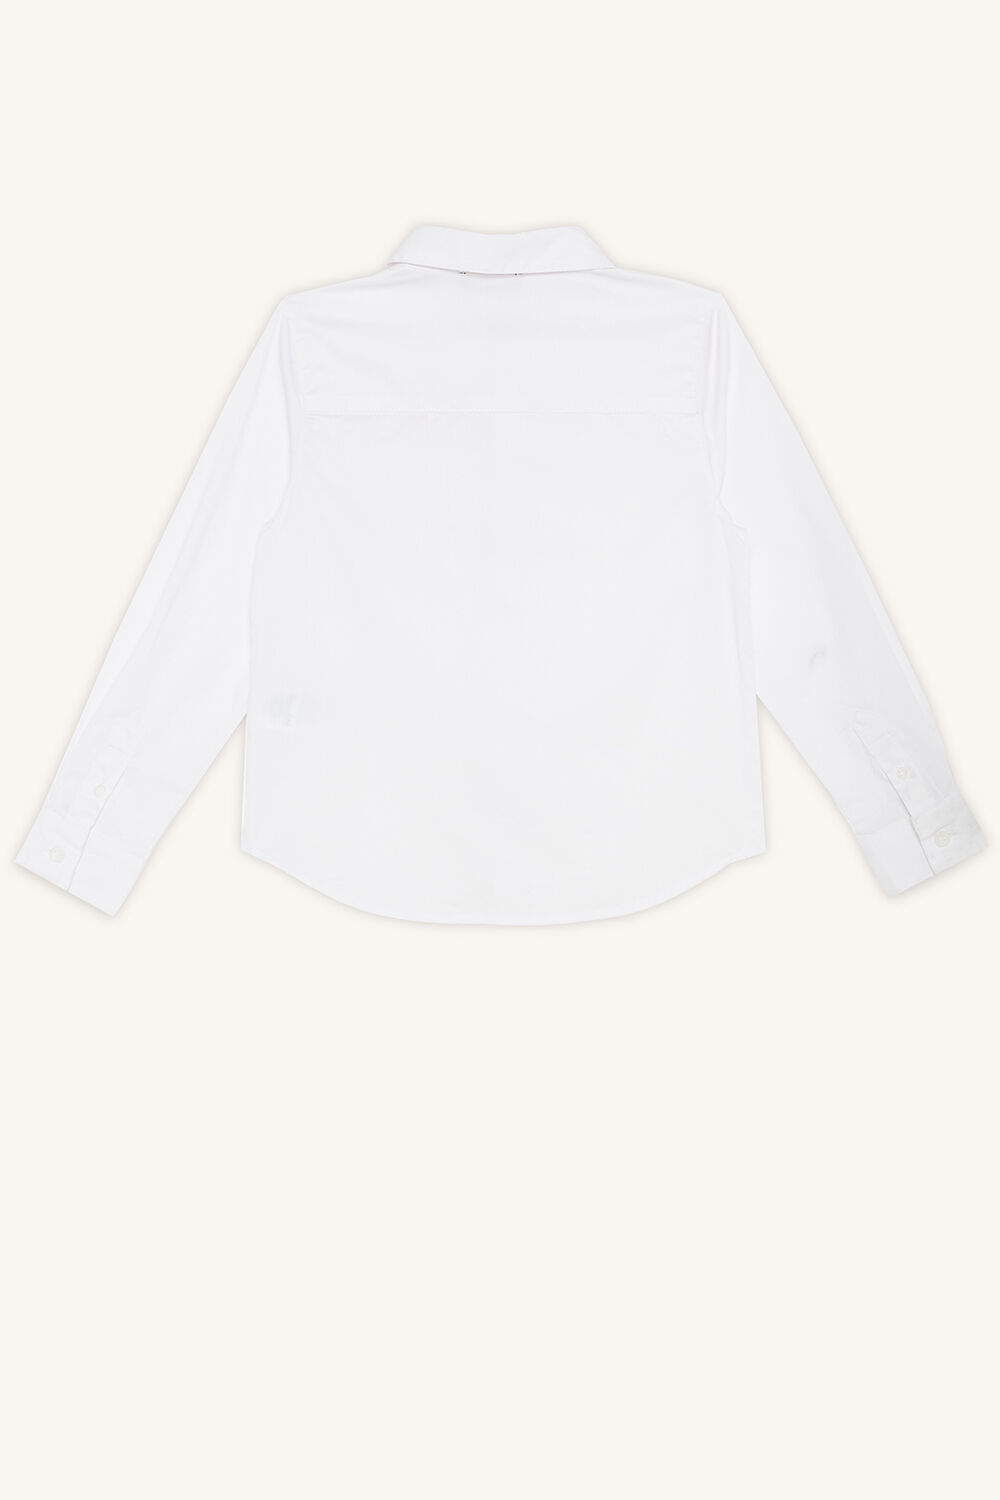 TEXTURED WEAVE SHIRT in colour BRIGHT WHITE